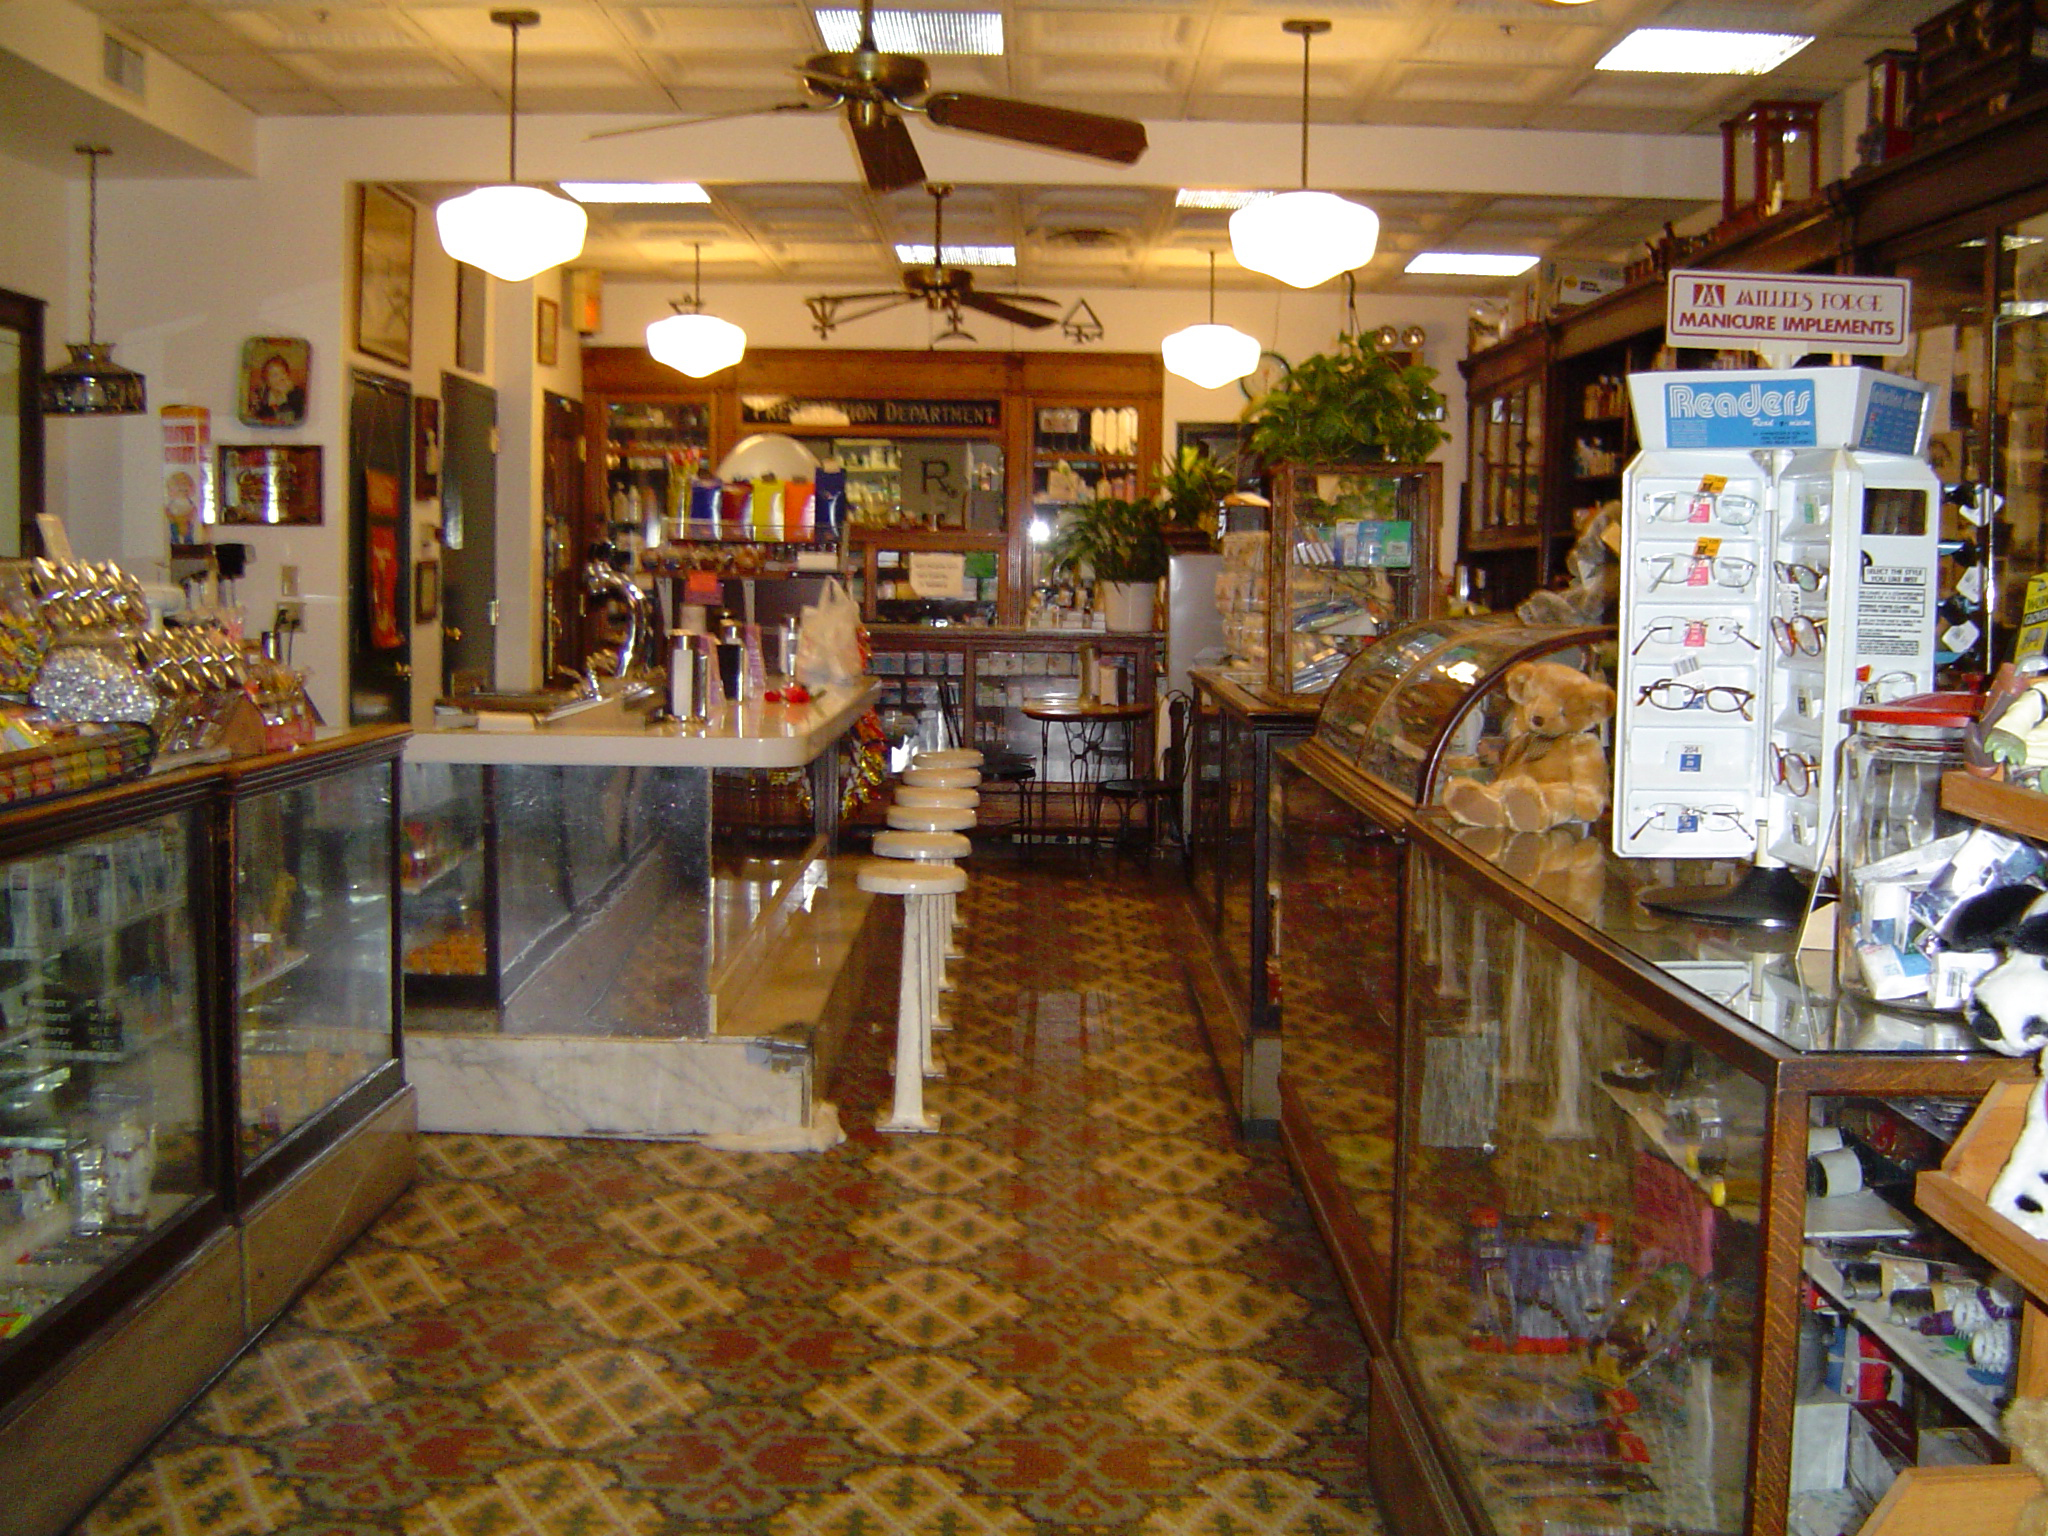 Interior view of Hutchinson Drug Store at the Short & Broadway location (circa 2007).